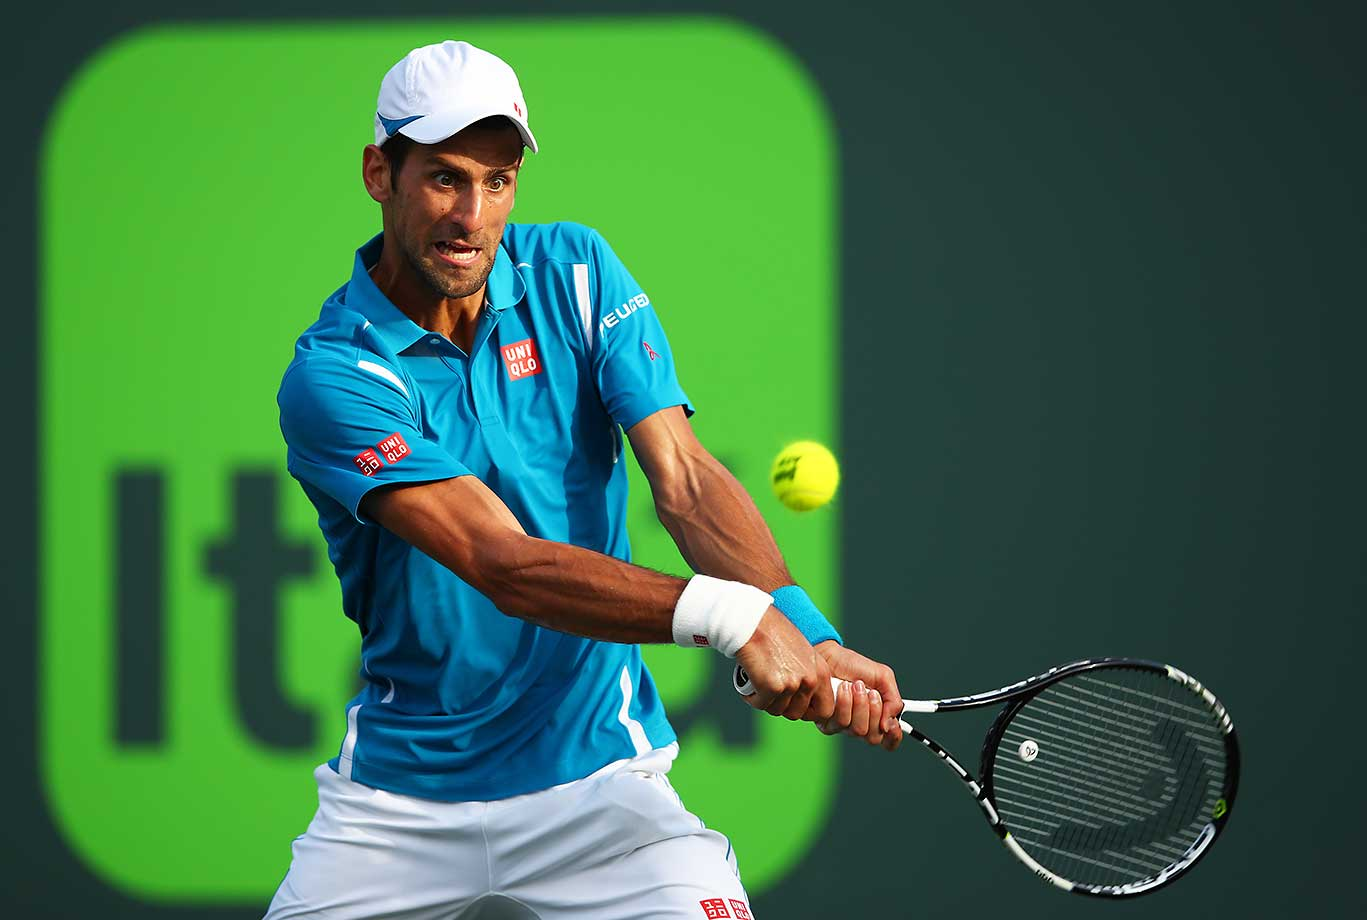 Novak Djokovic plays a backhand against Joao Sousa of Portugal in their third round match at the Miami Open.